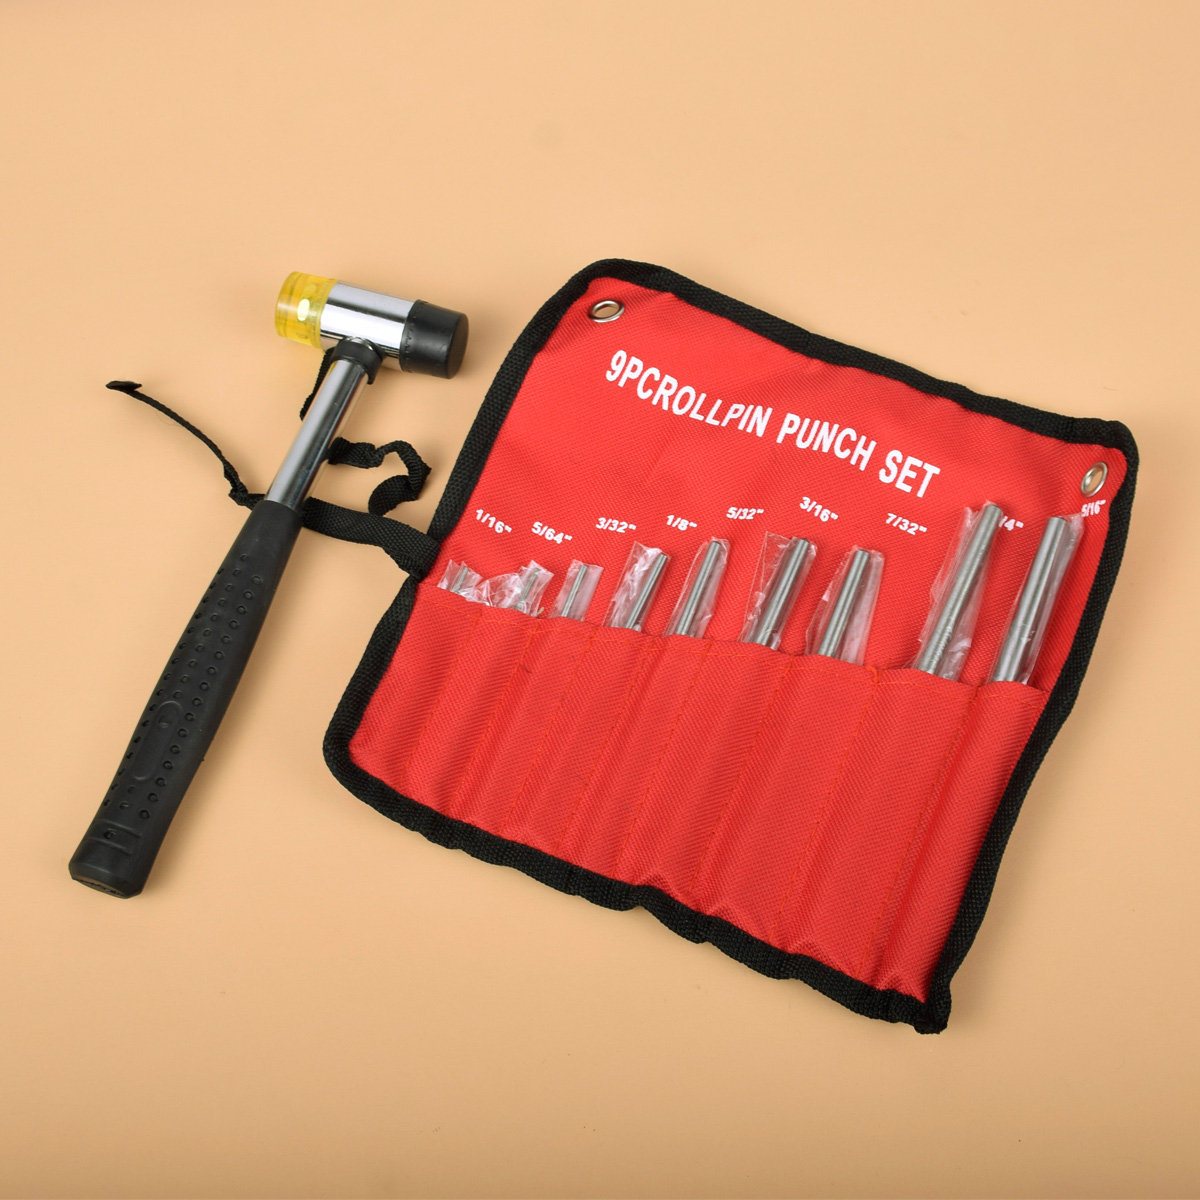 Tactical 9Pcs Professional Roll Pin Punch Set Gun Bolt Catch Roll Up Case Tool Kit With Double-Faced Soft Rubber Mallet Hammer